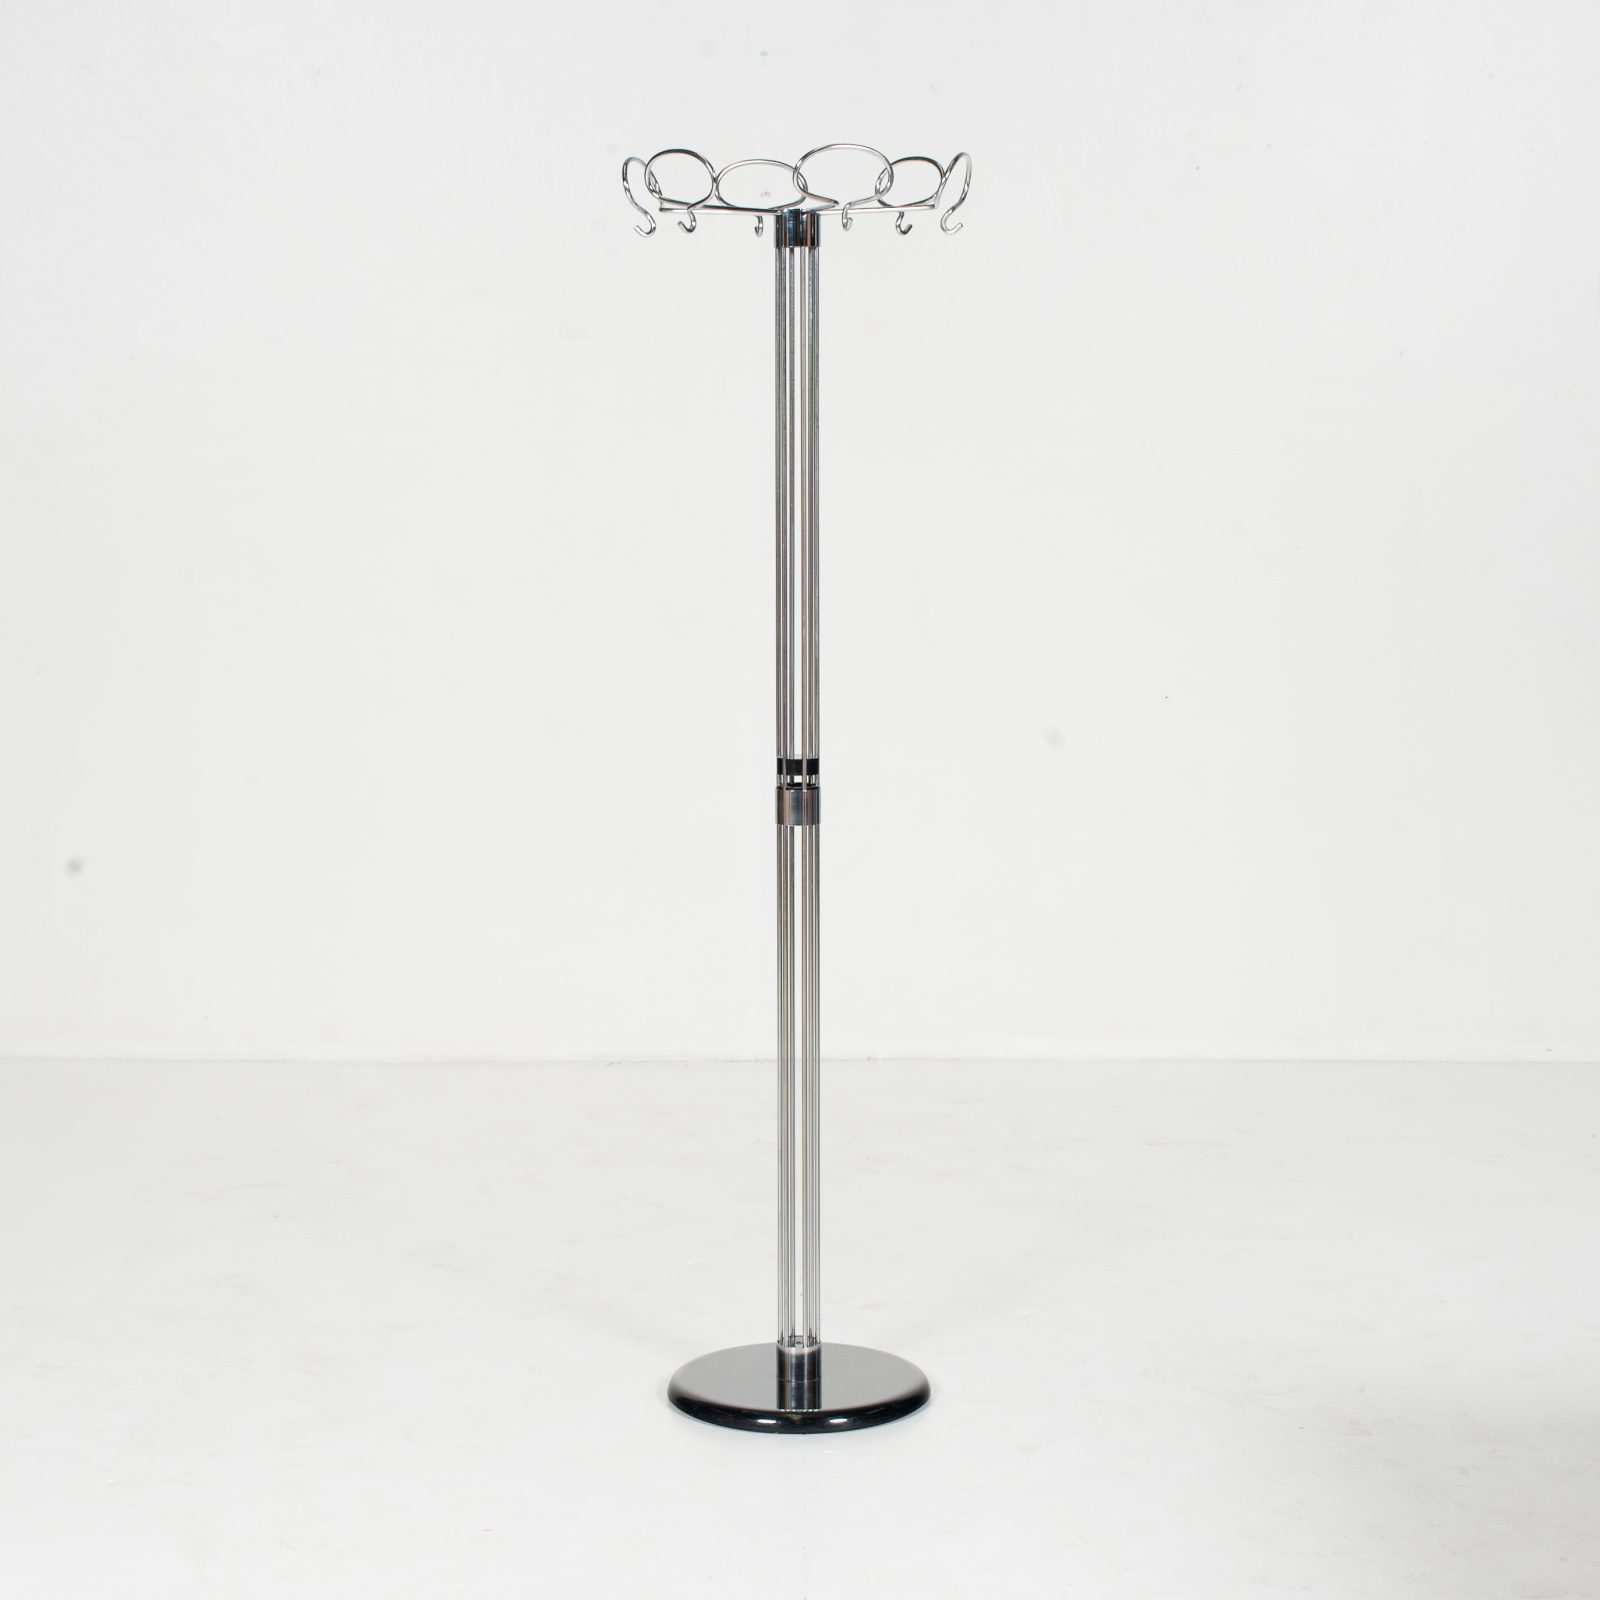 Hat Stand In Chrome And Black Steel, 1960s, Belgium64